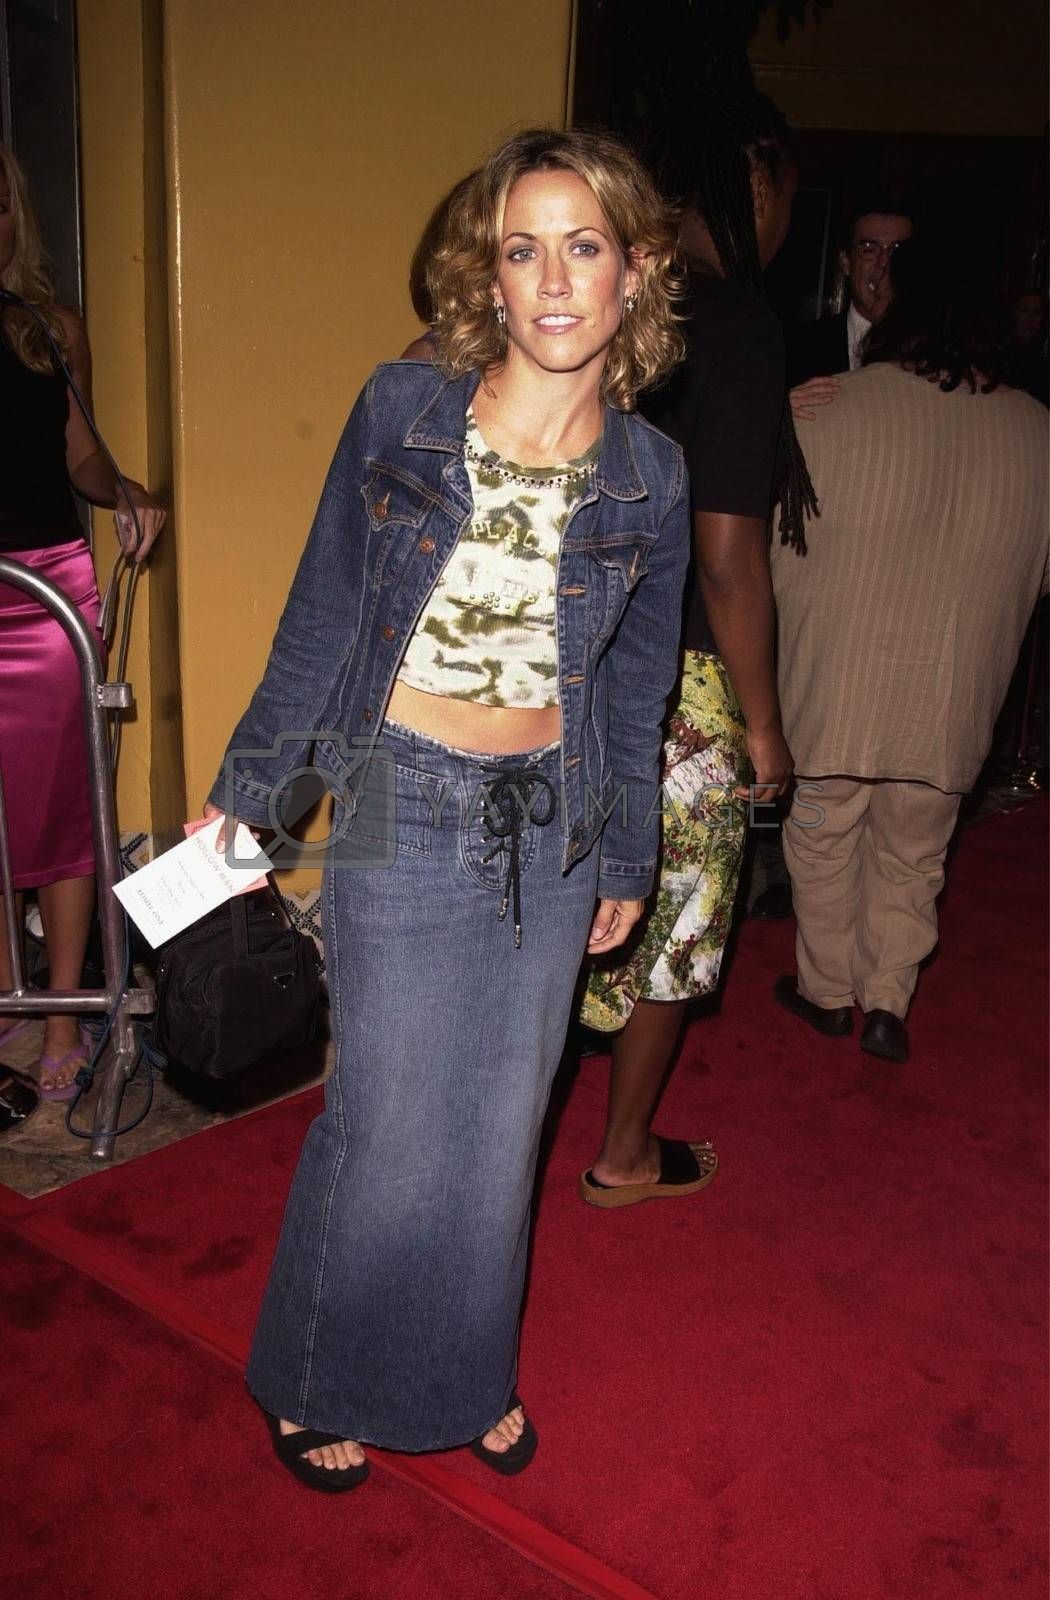 Sheryl Crow at the premiere of Hollow Man in Westwood. 08-02-00